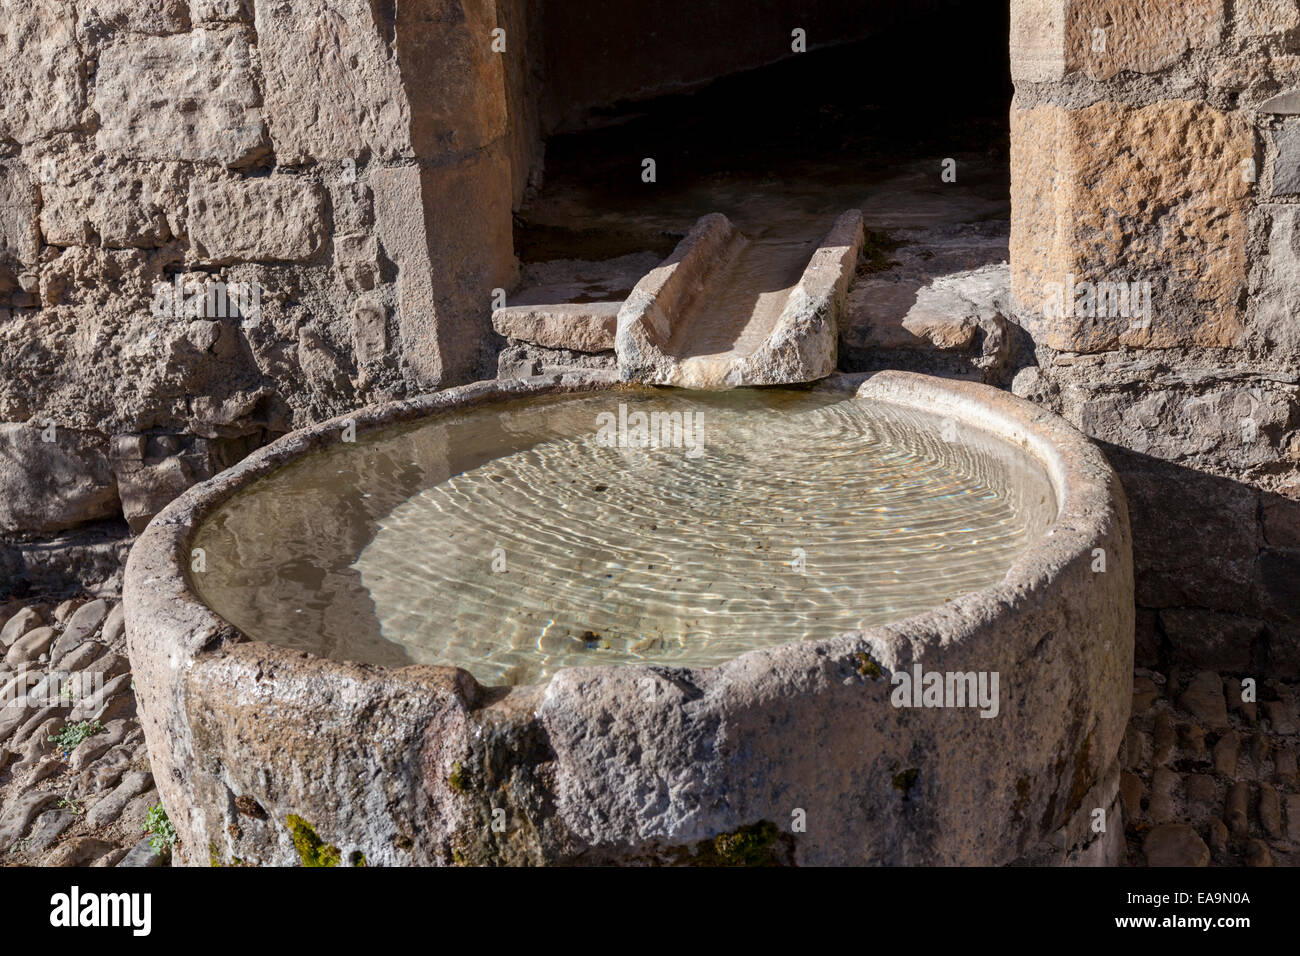 The original basin fountain of the Saint Cristofol church, in Peyre (Aveyron - France). Directly dug in the cliff, - Stock Image